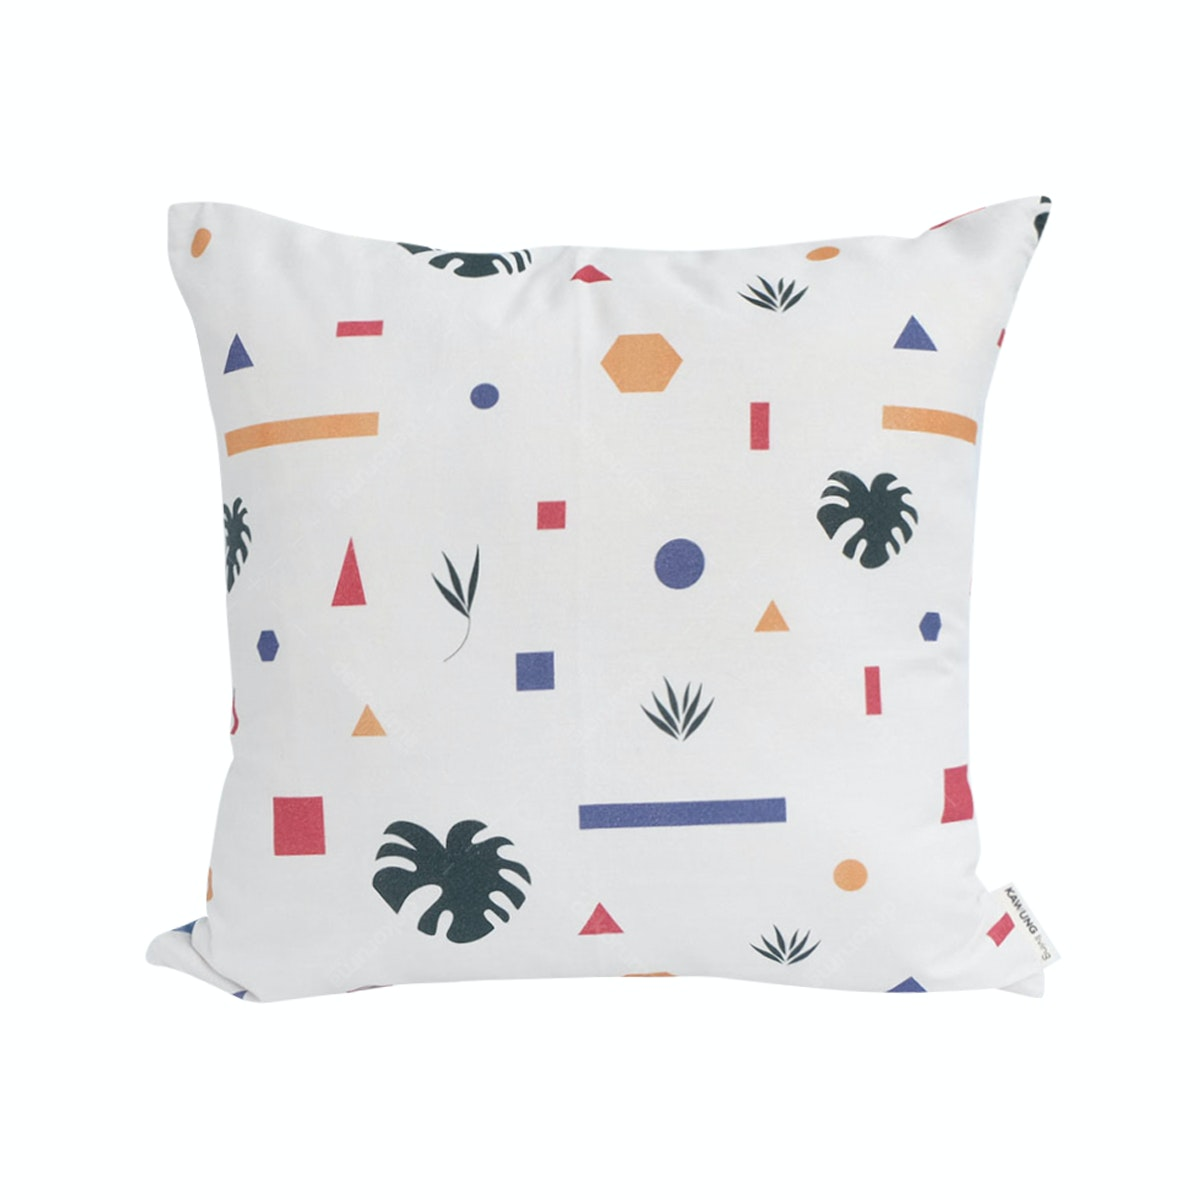 KAWUNG LIVING Spring Field Bold Cushion 40x40 (Cover Only)